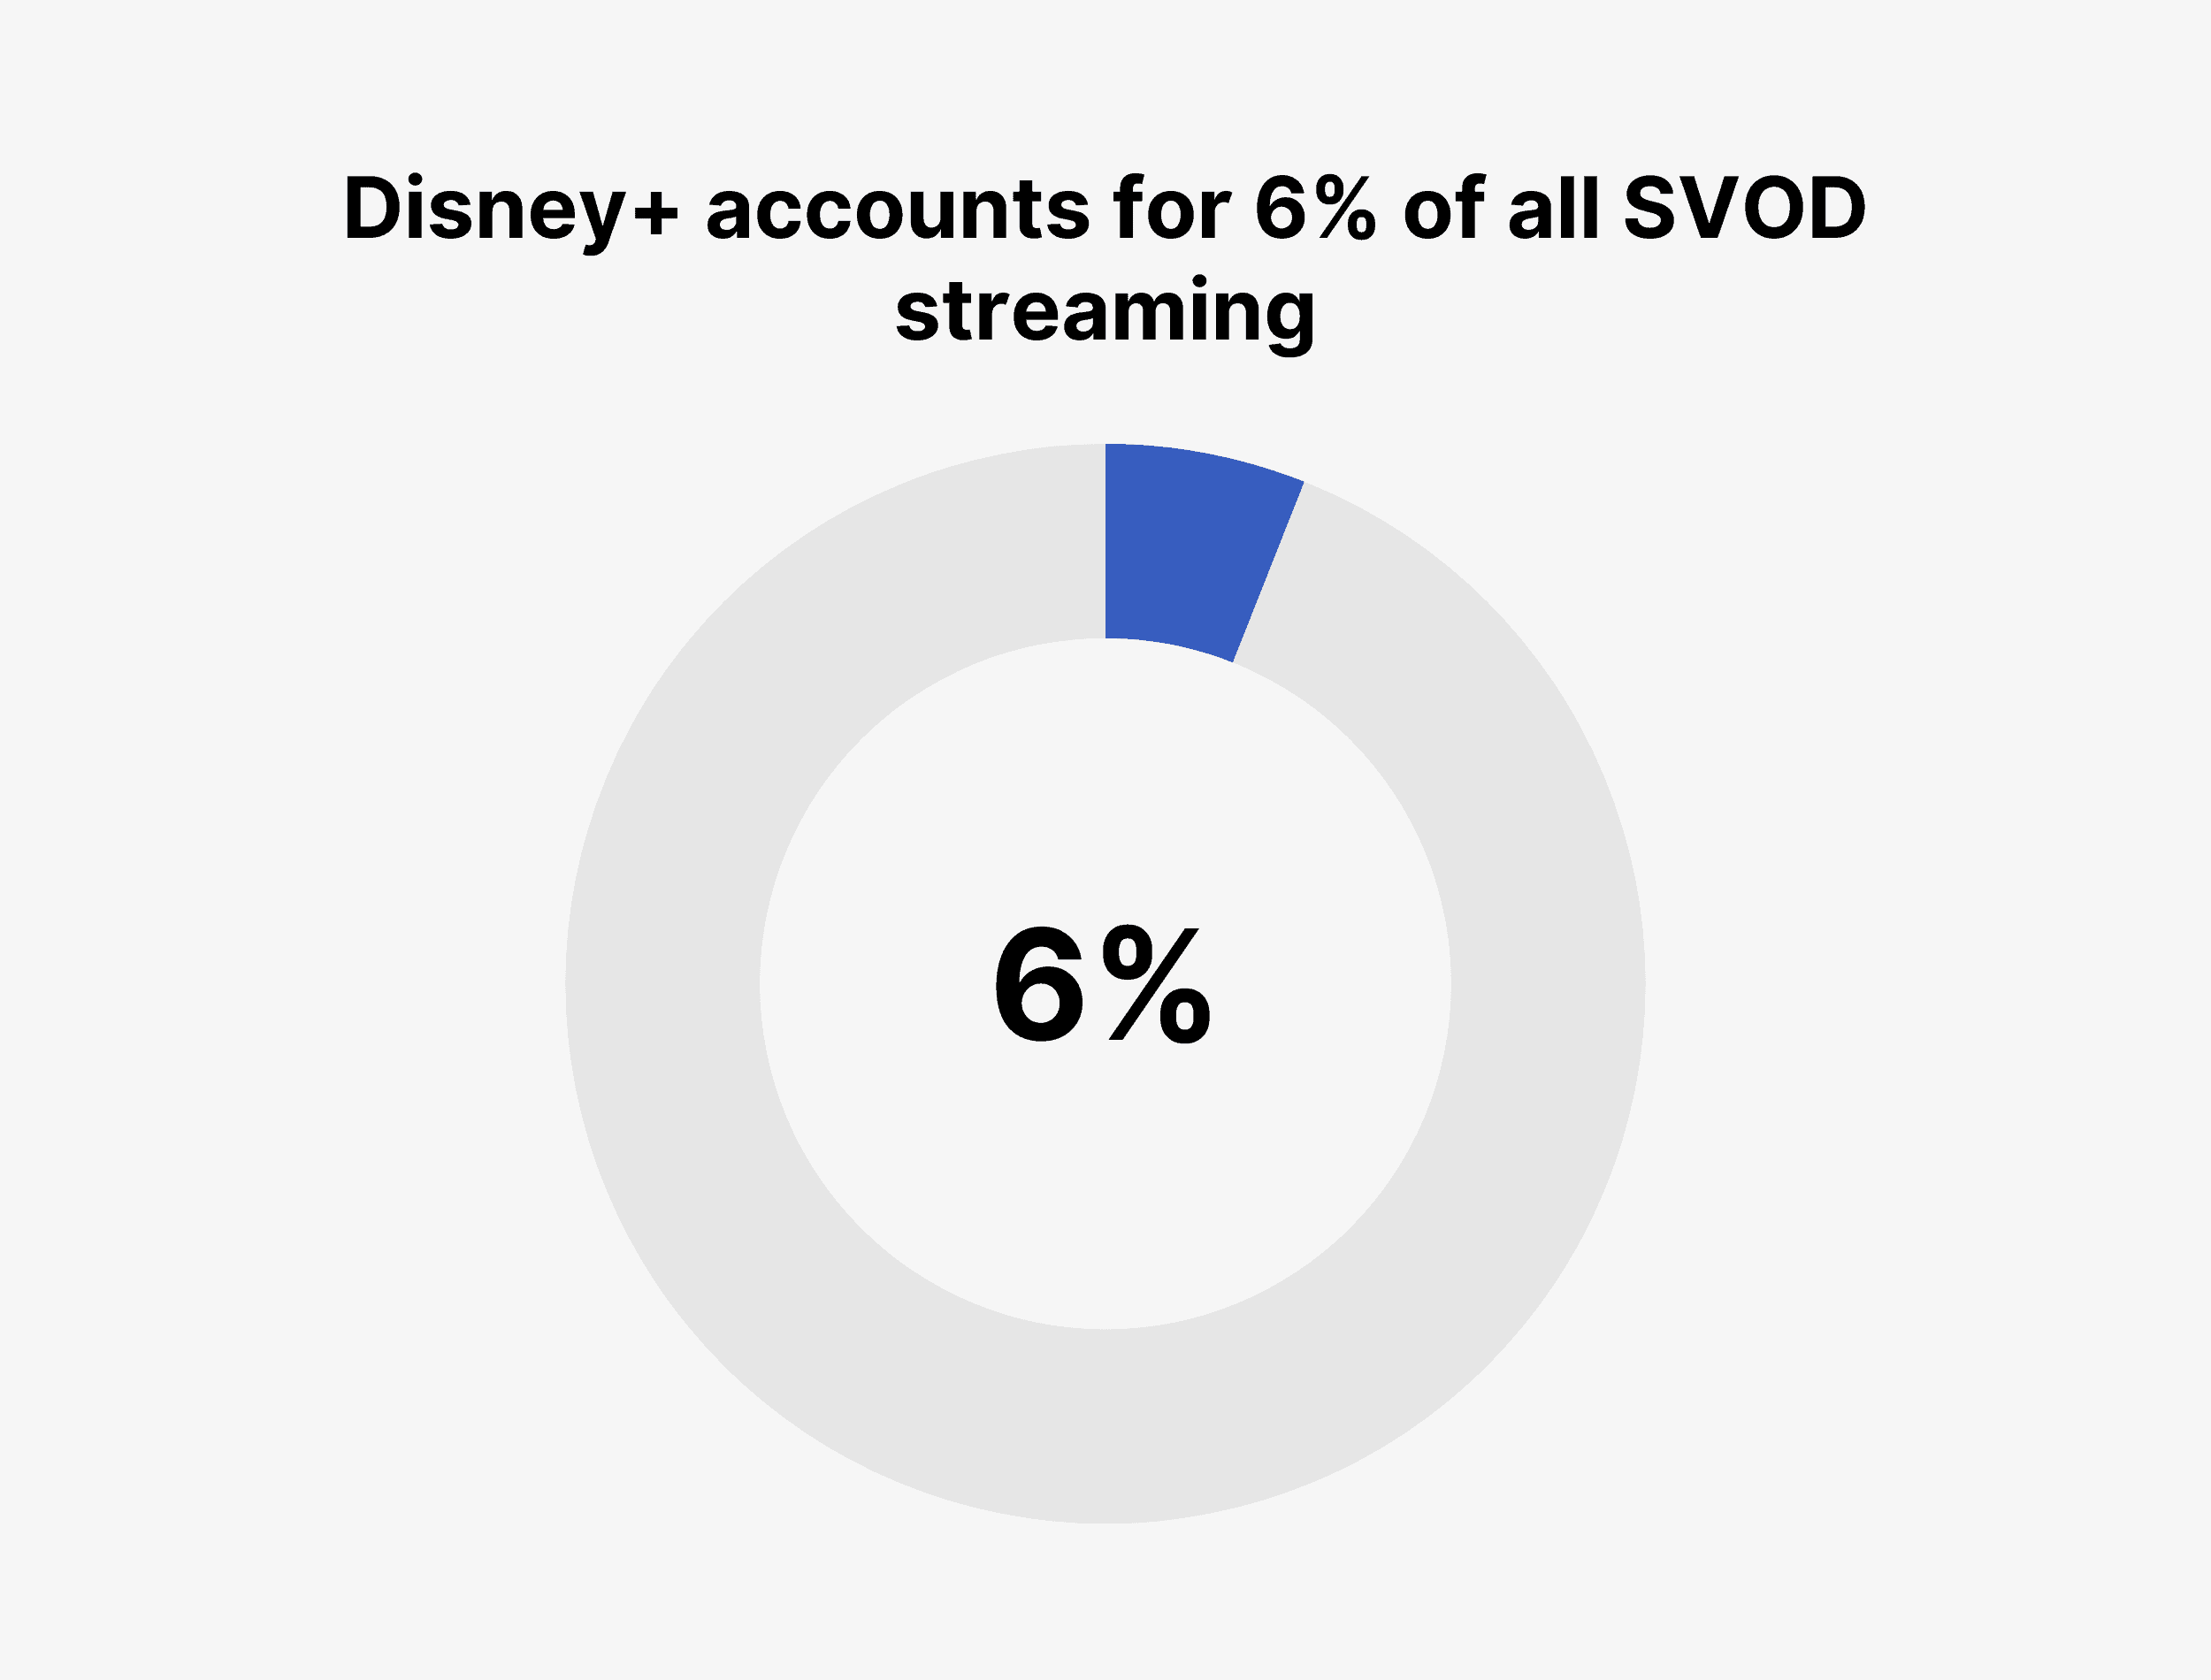 Disney+ accounts for 6% of all SVOD streaming